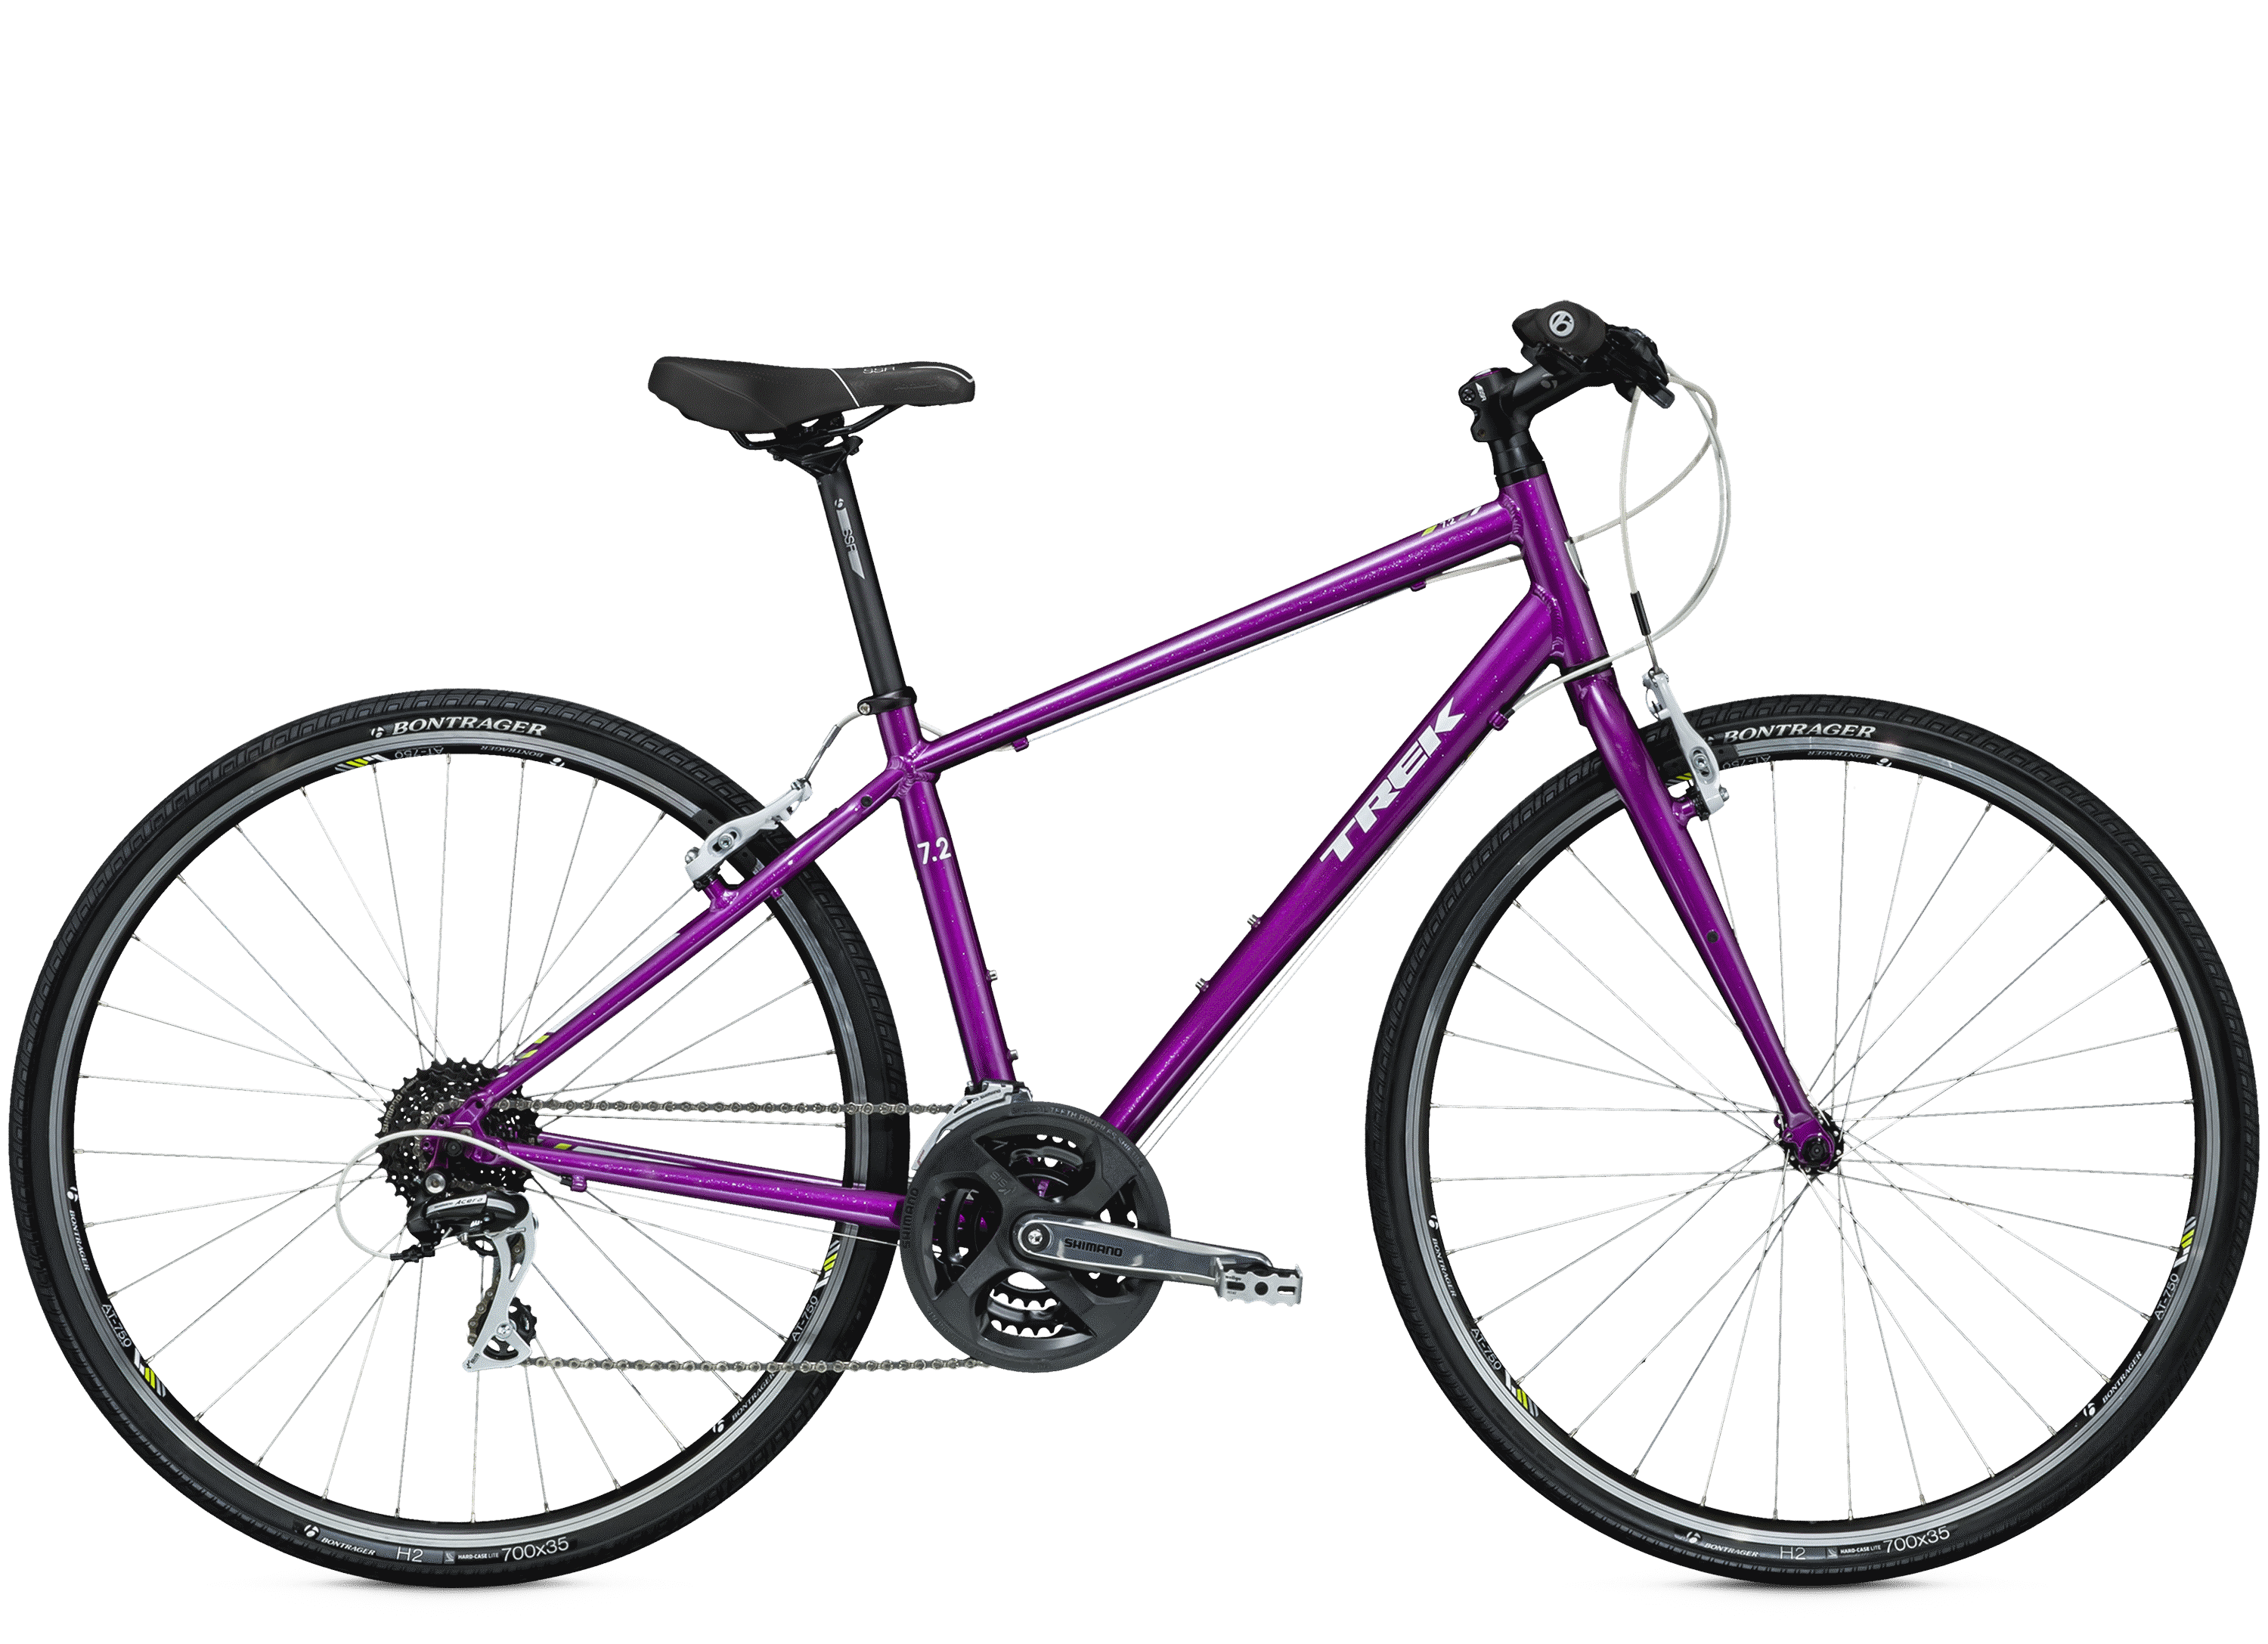 Trek 7 2 Fx Wsd Available In Three Sizes And Three Colors Also